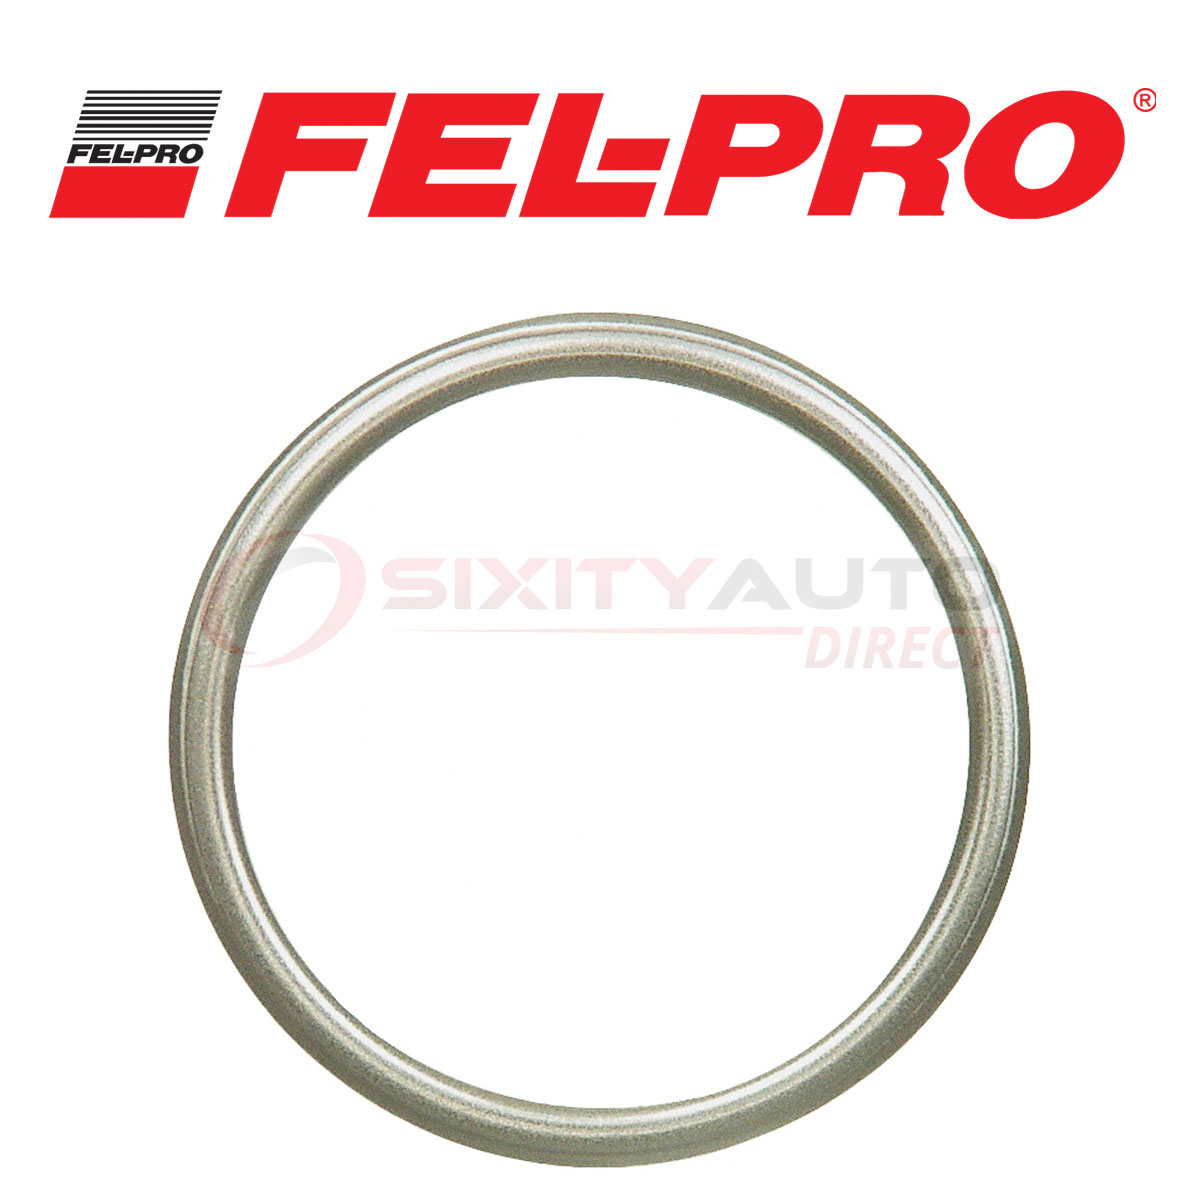 Fel Pro Exhaust Pipe Flange Gasket For 2015-2017 Acura TLX